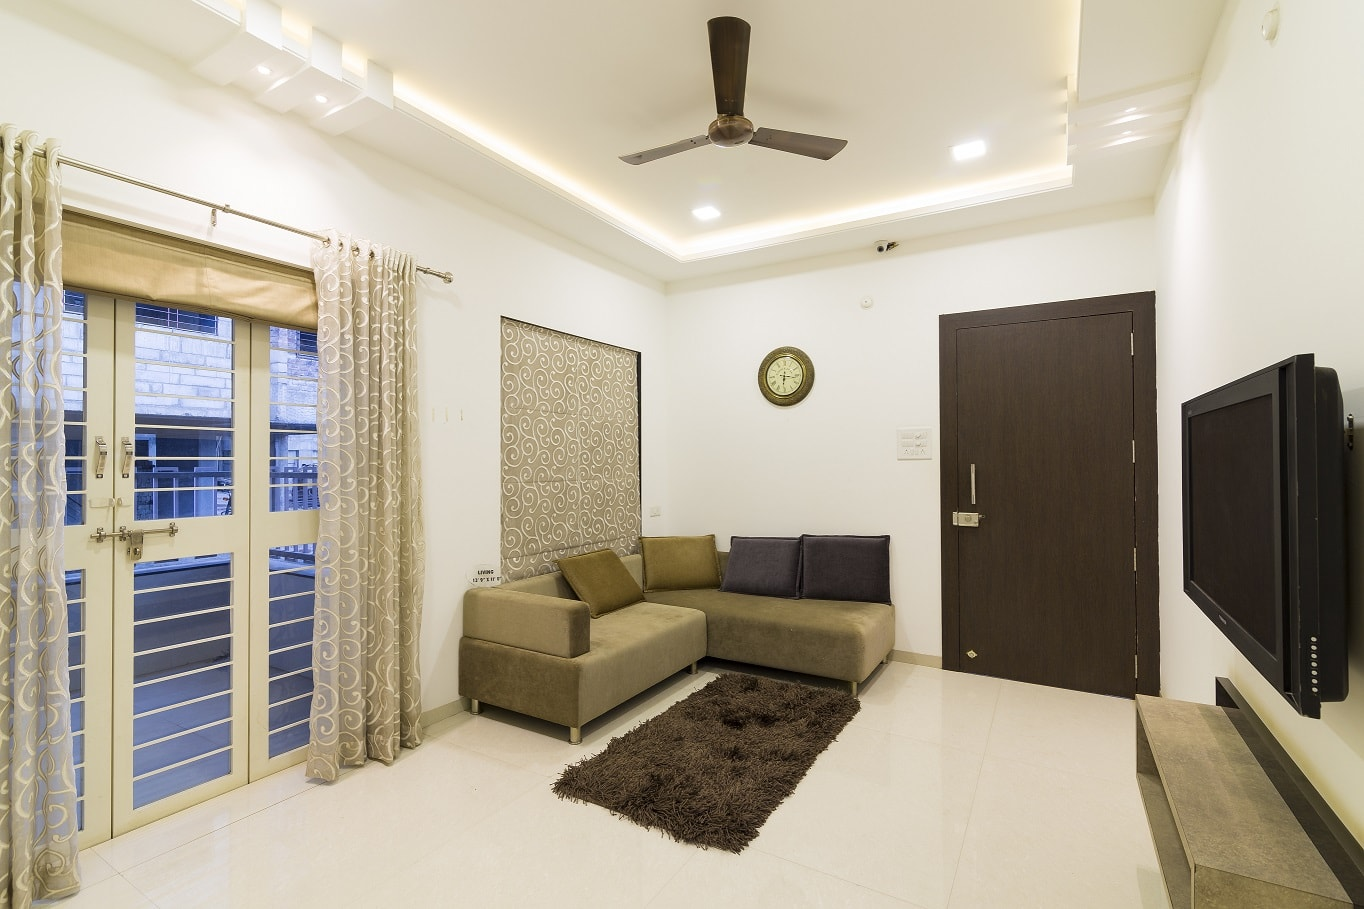 Residential Property Wakad Pune Commercial Property